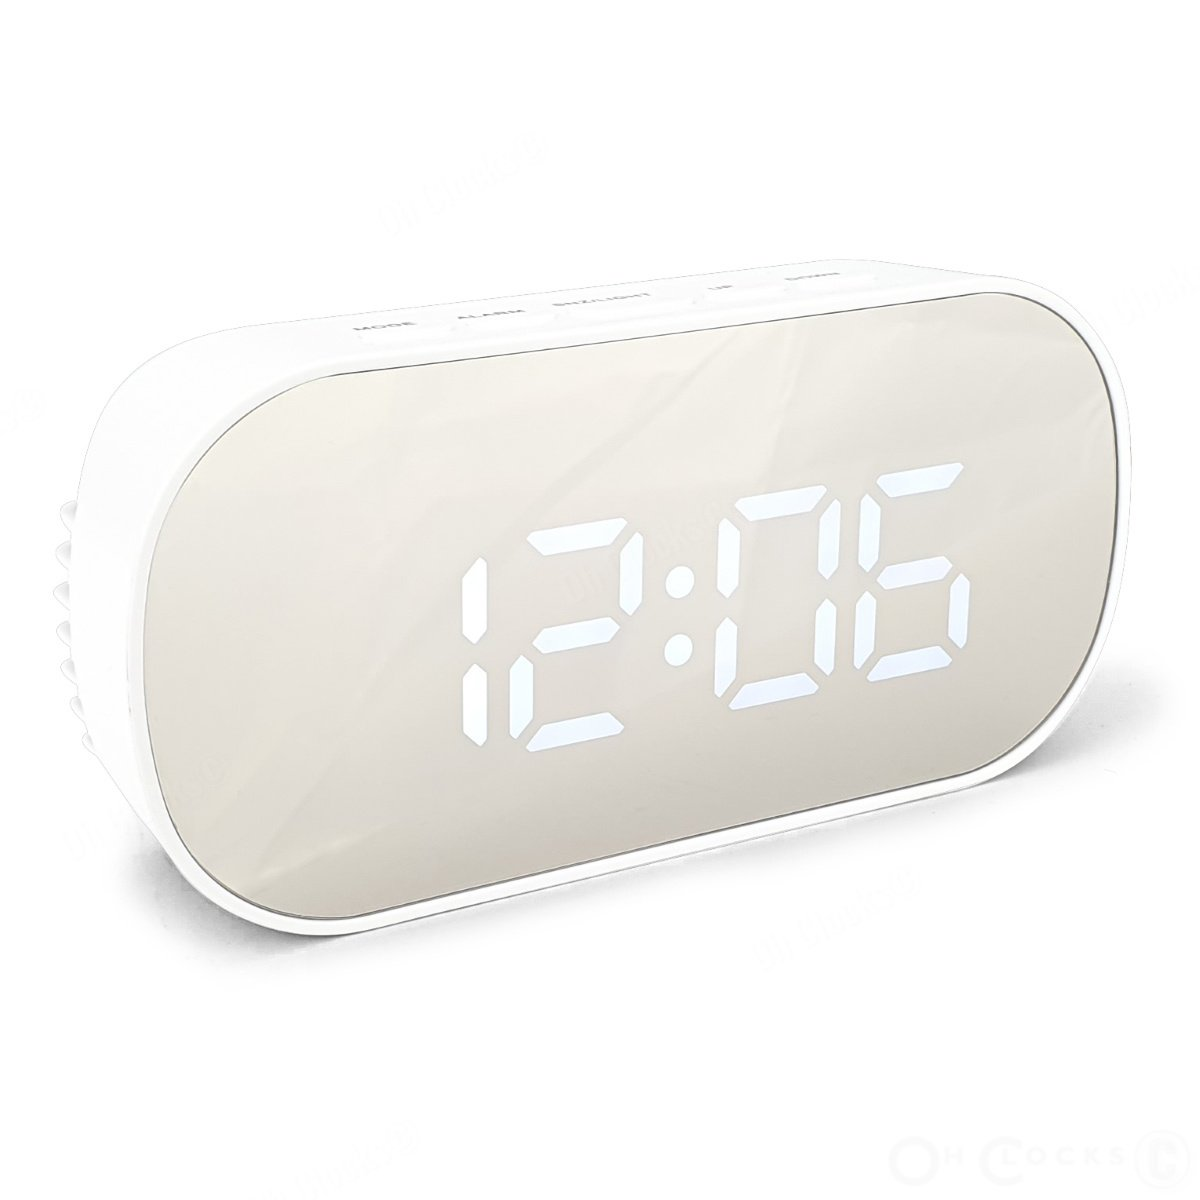 Checkmate Hudson Mirrored Face LCD Alarm Clock White 13cm VGW 6506 WHI 1